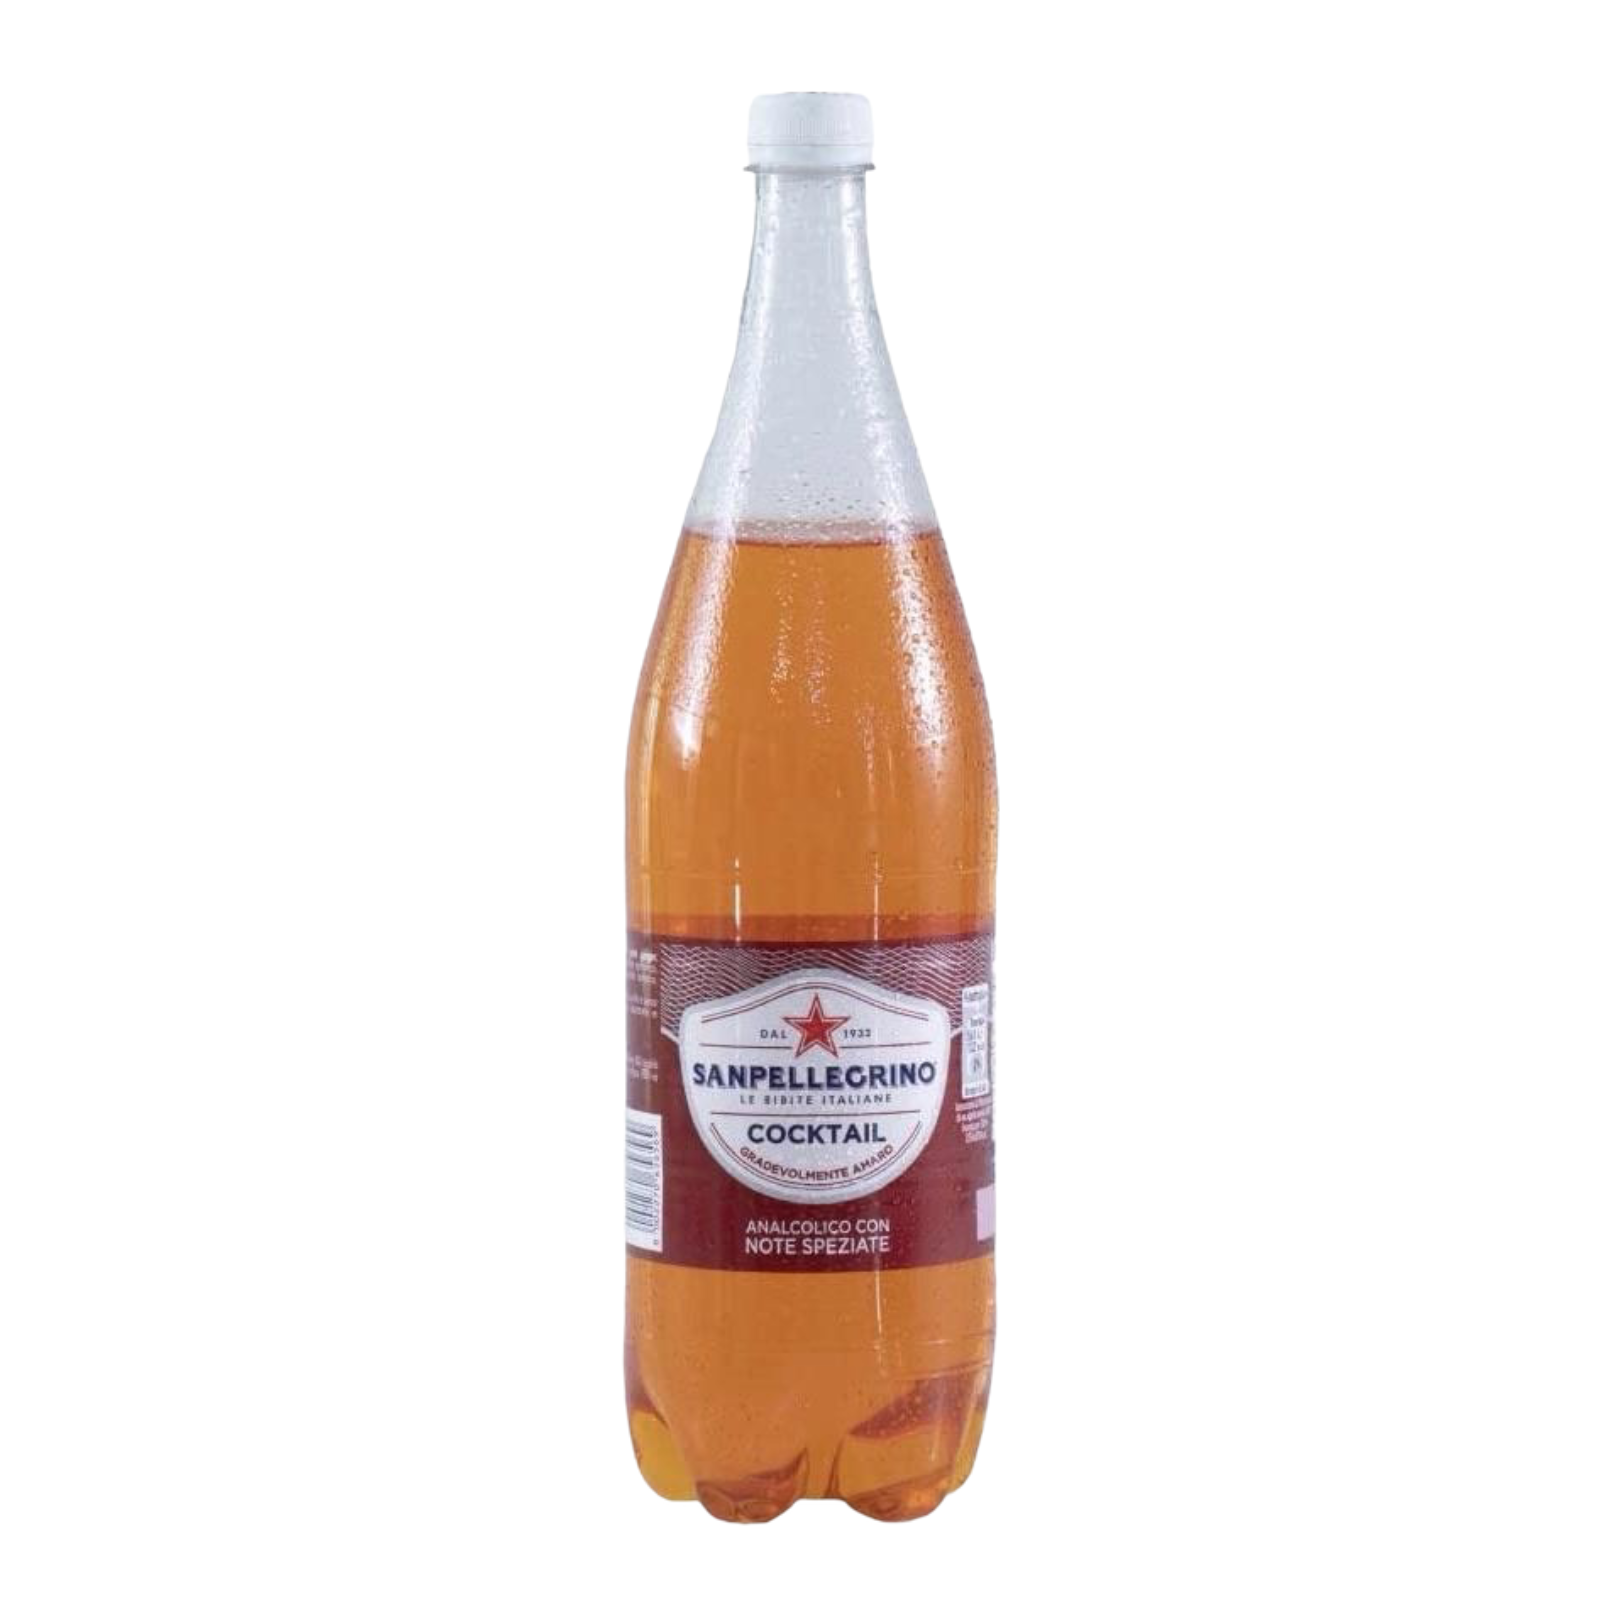 Sanpellegrino Cocktail non-alcoholic drink 1,25L